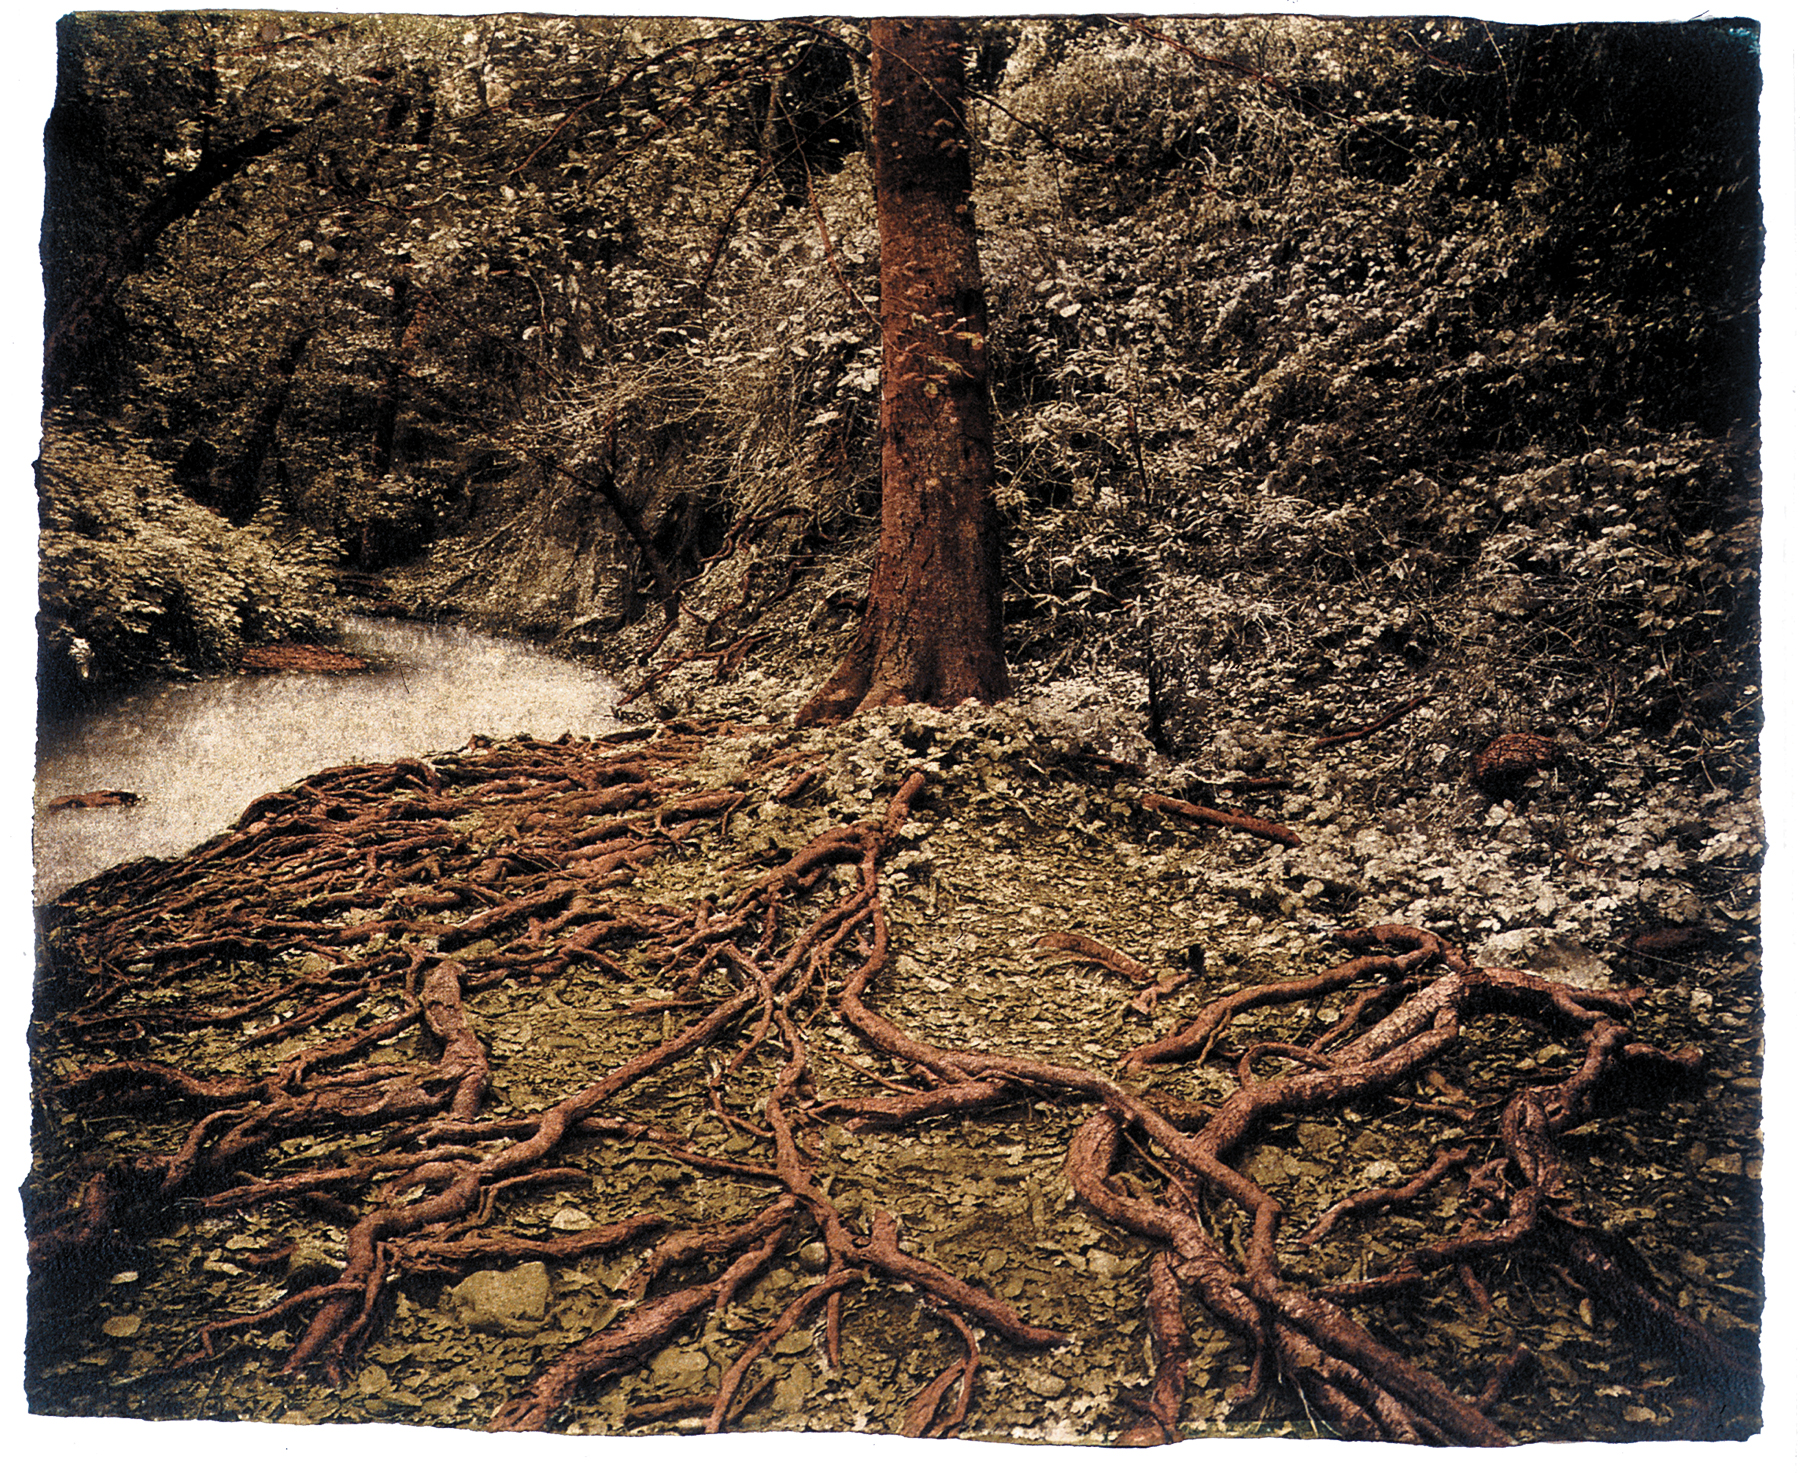 Brian Taylor Eroded Roots exposed